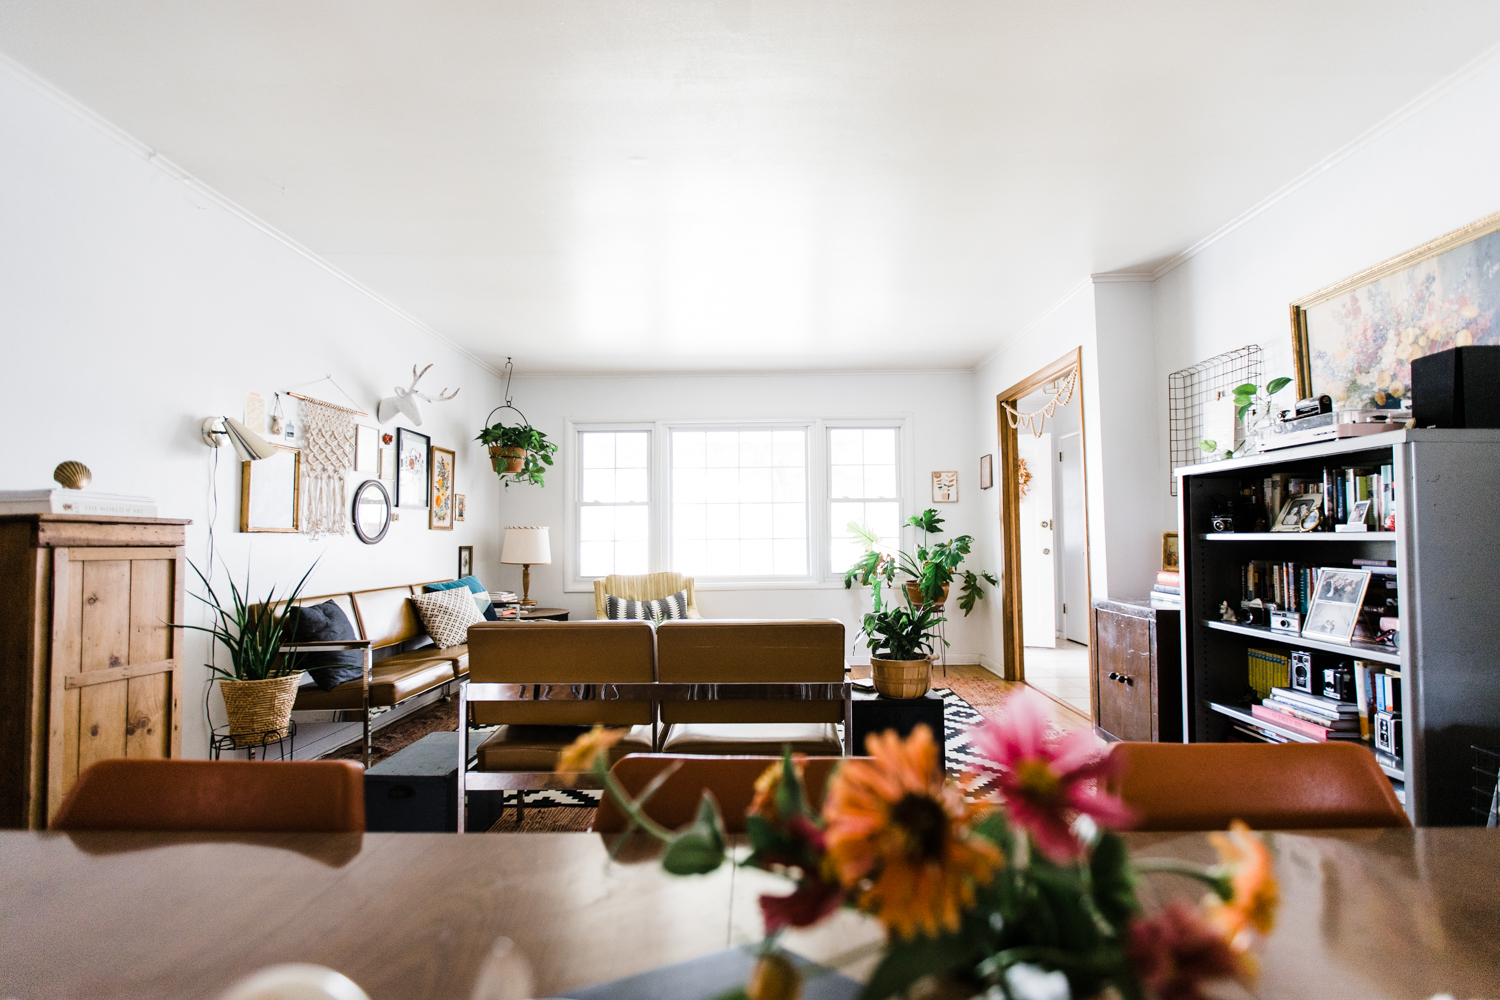 Abbey-Wells-Home-eclectic-colorful-home-WEB-111.jpg